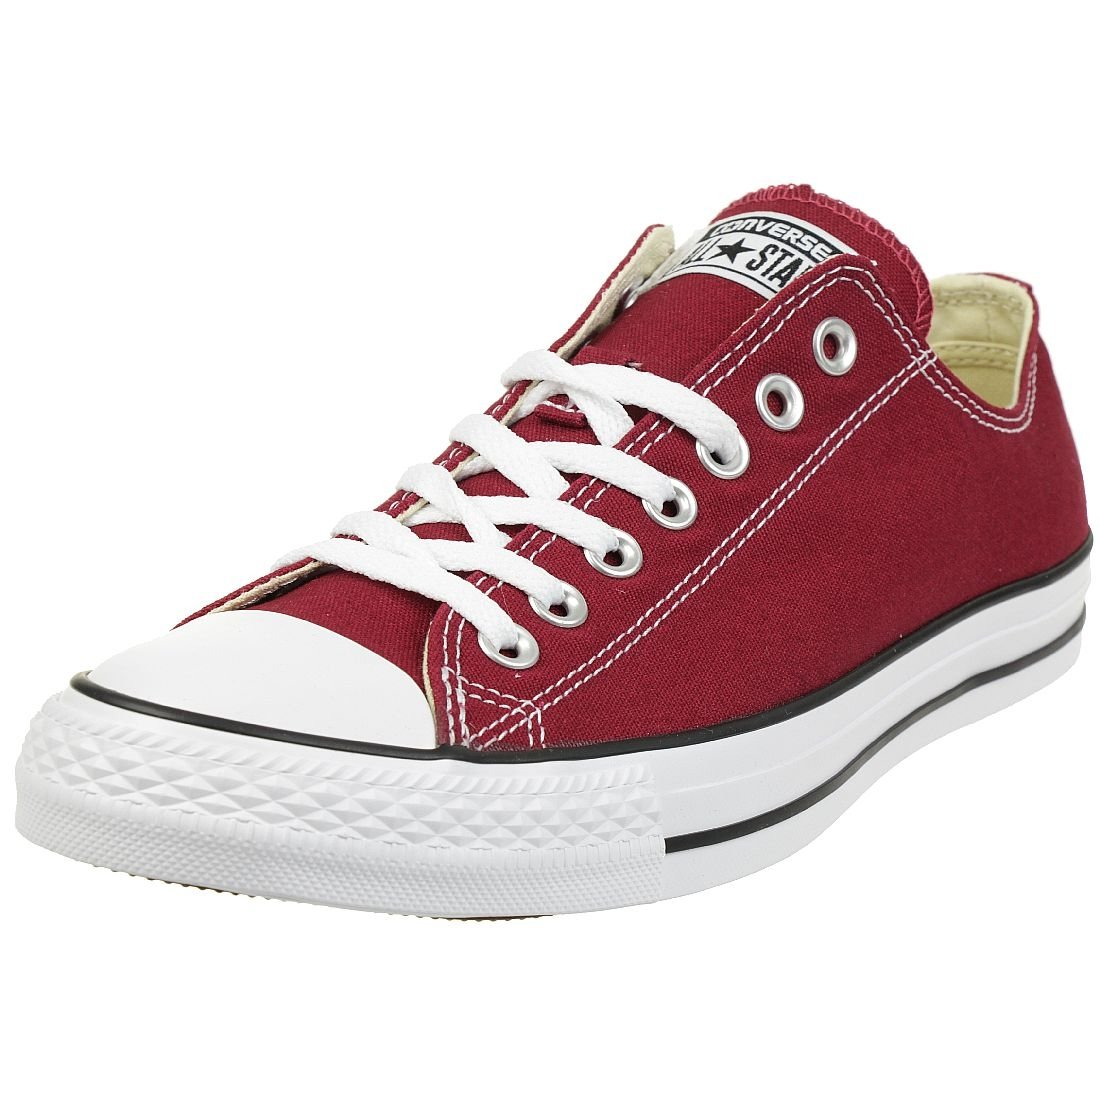 Converse Chuck Taylor Baskets All Star Converse Core, Taylor Baskets Mixte Adulte R?tlichbraun 38f26b5 - epictionpvp.space